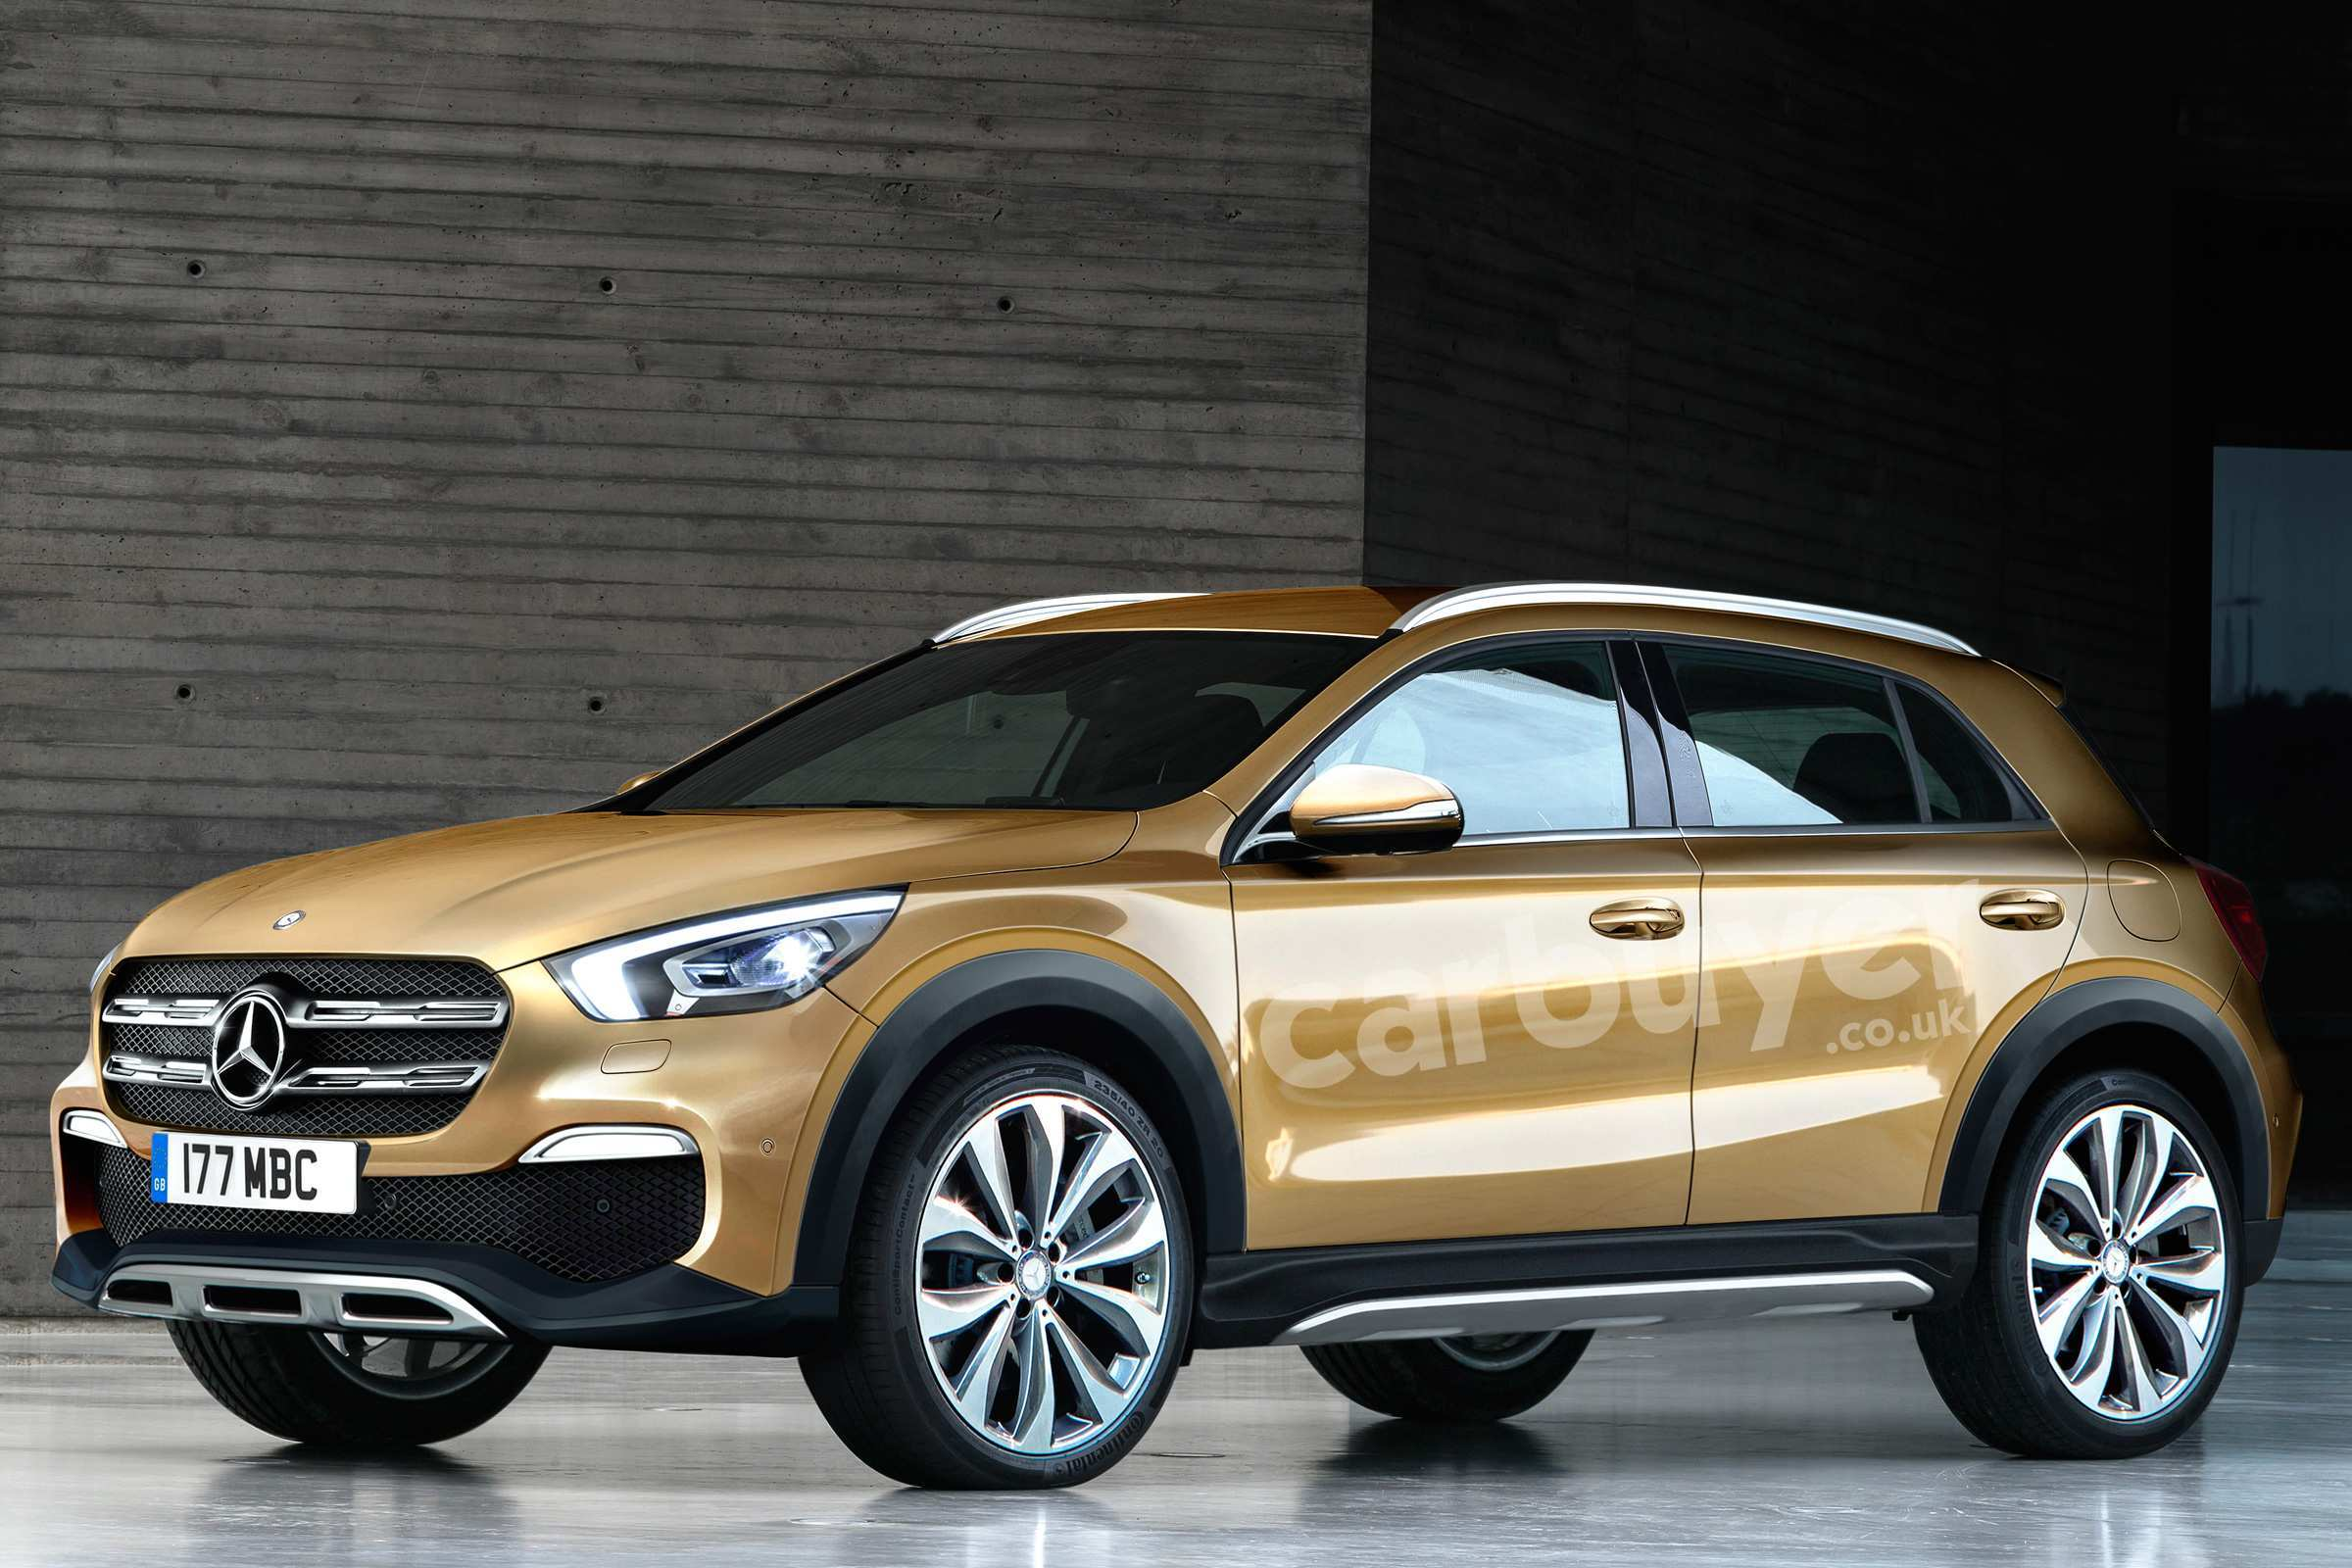 64 The Gla Mercedes 2020 New Review for Gla Mercedes 2020